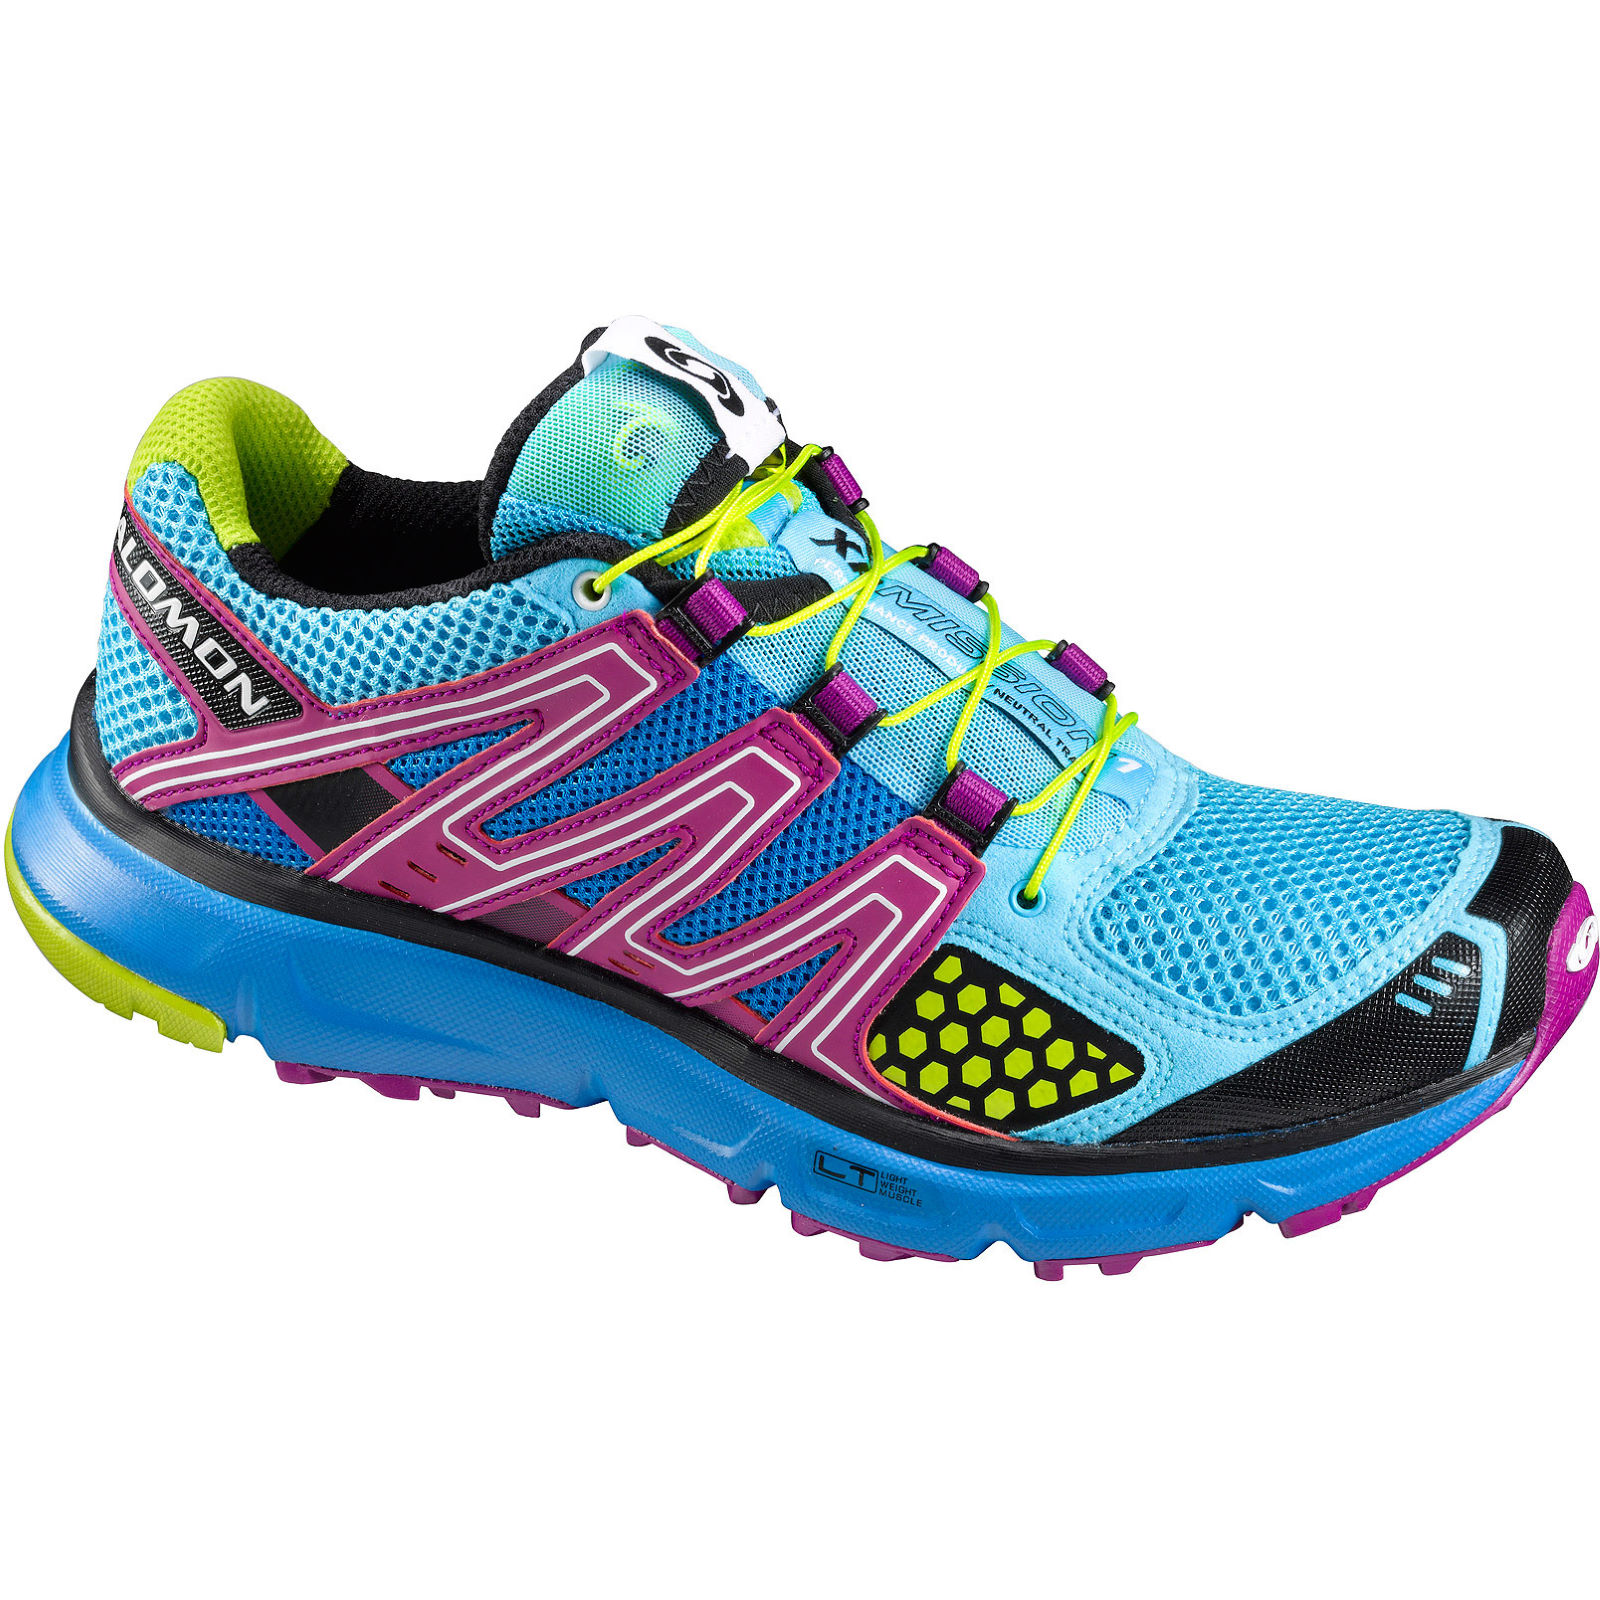 Salomon Xr Mission Cs Womens Shoes